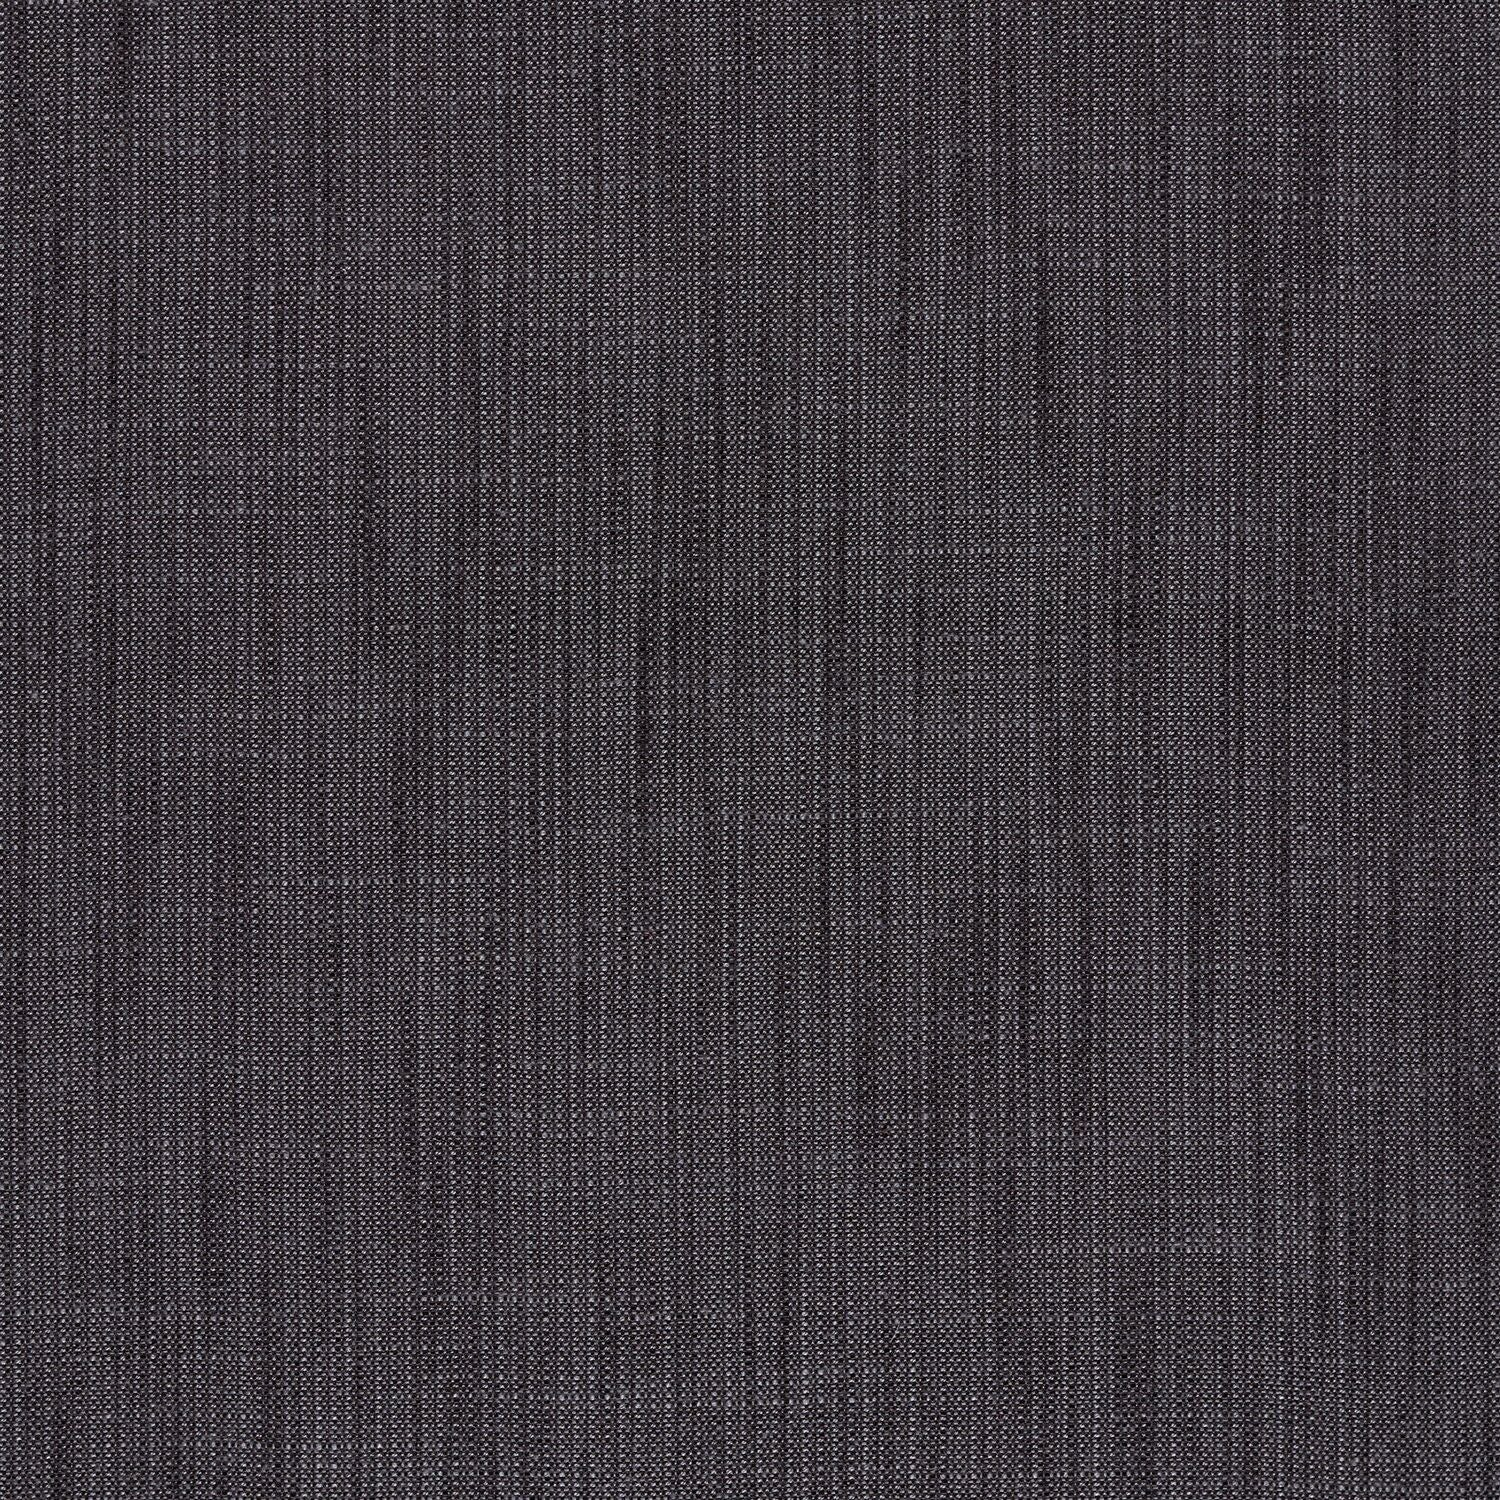 Duo Chrome - Charcoal - 4076 - 02 - Half Yard